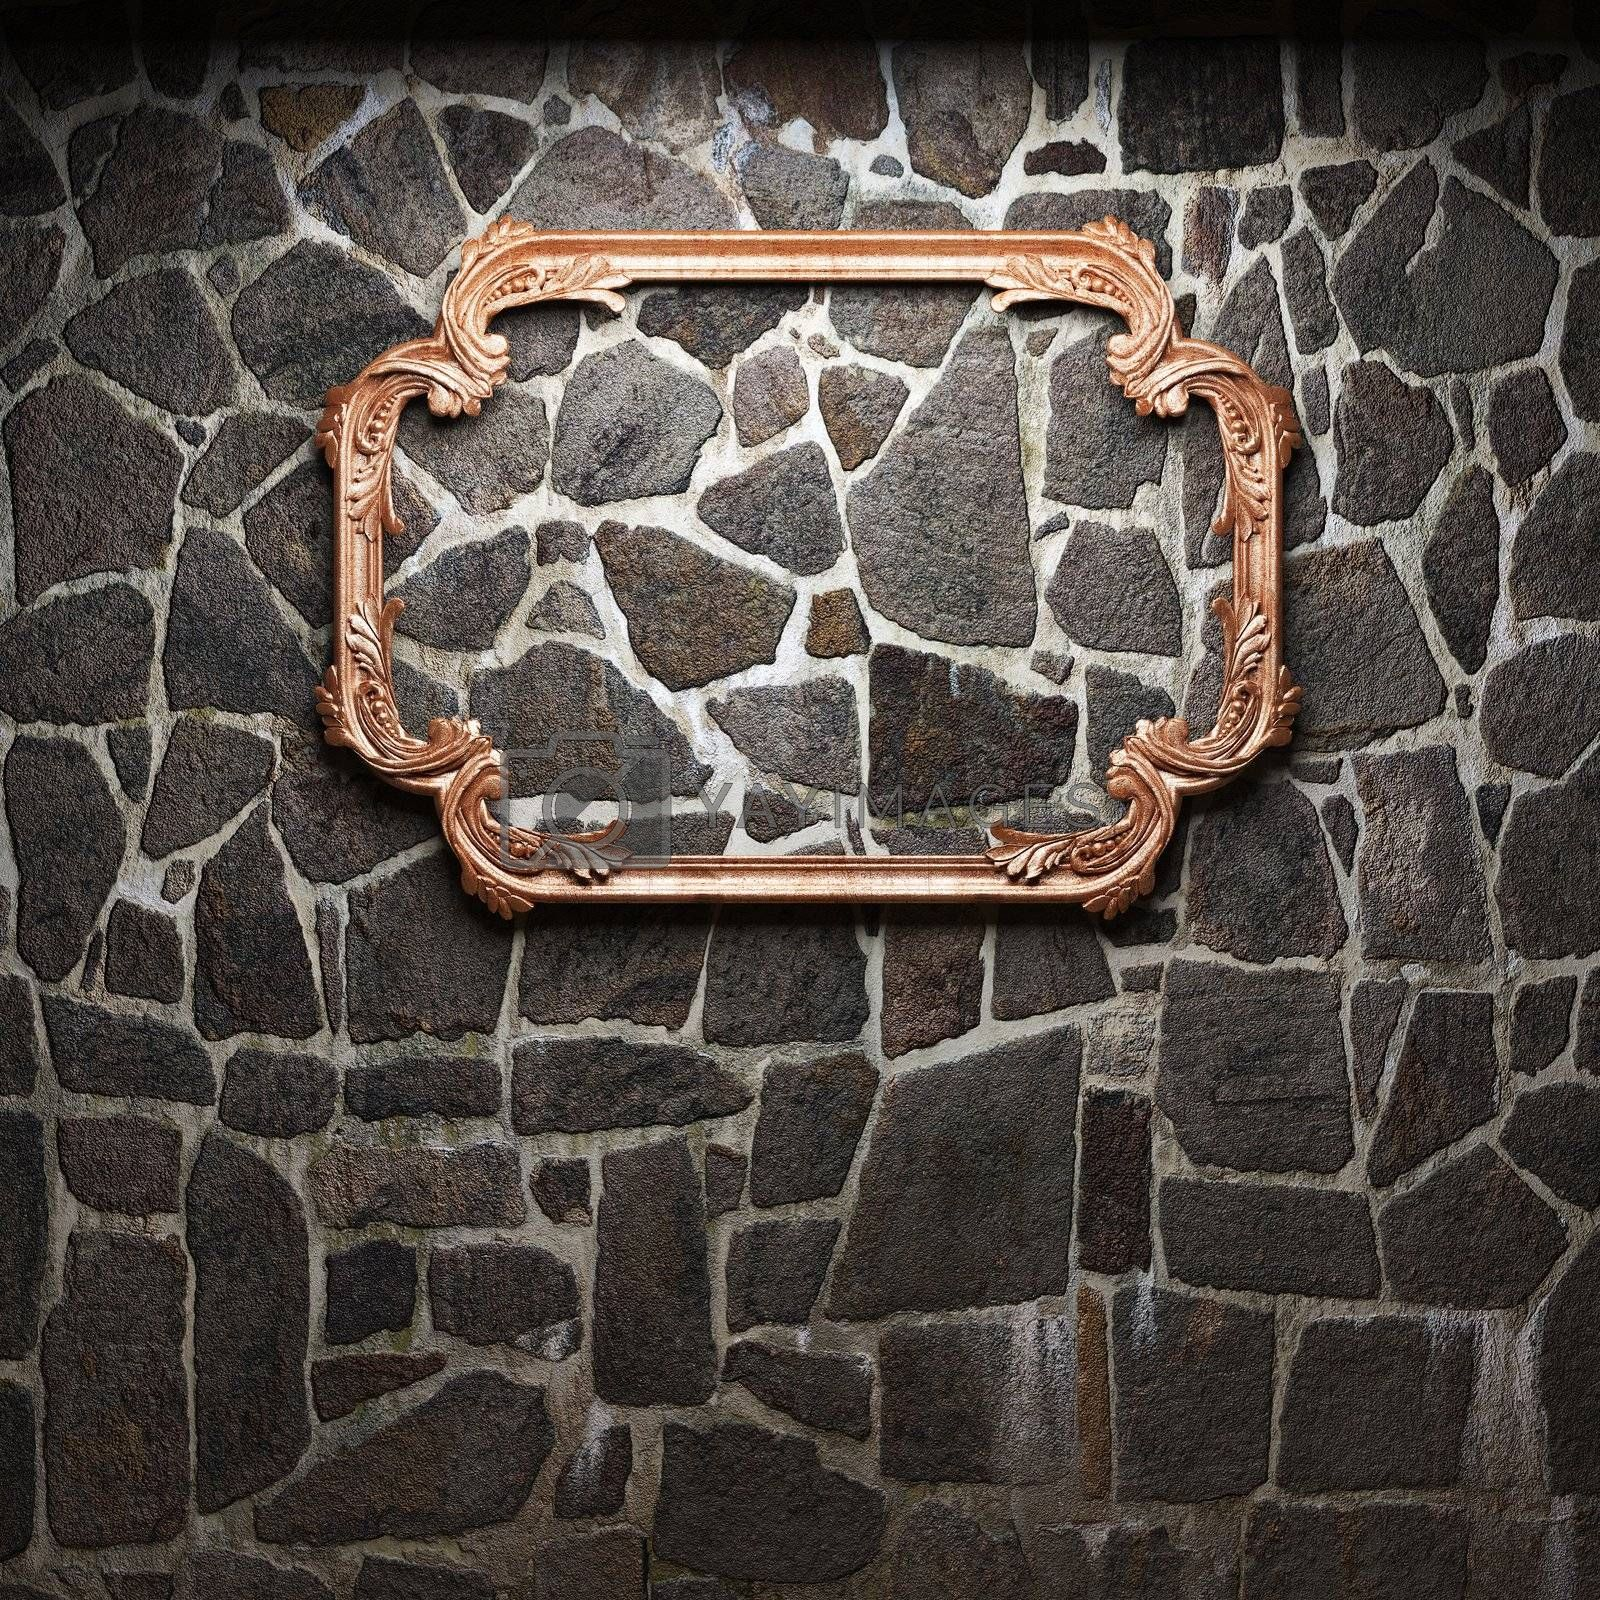 illuminated stone wall and frame made in 3D